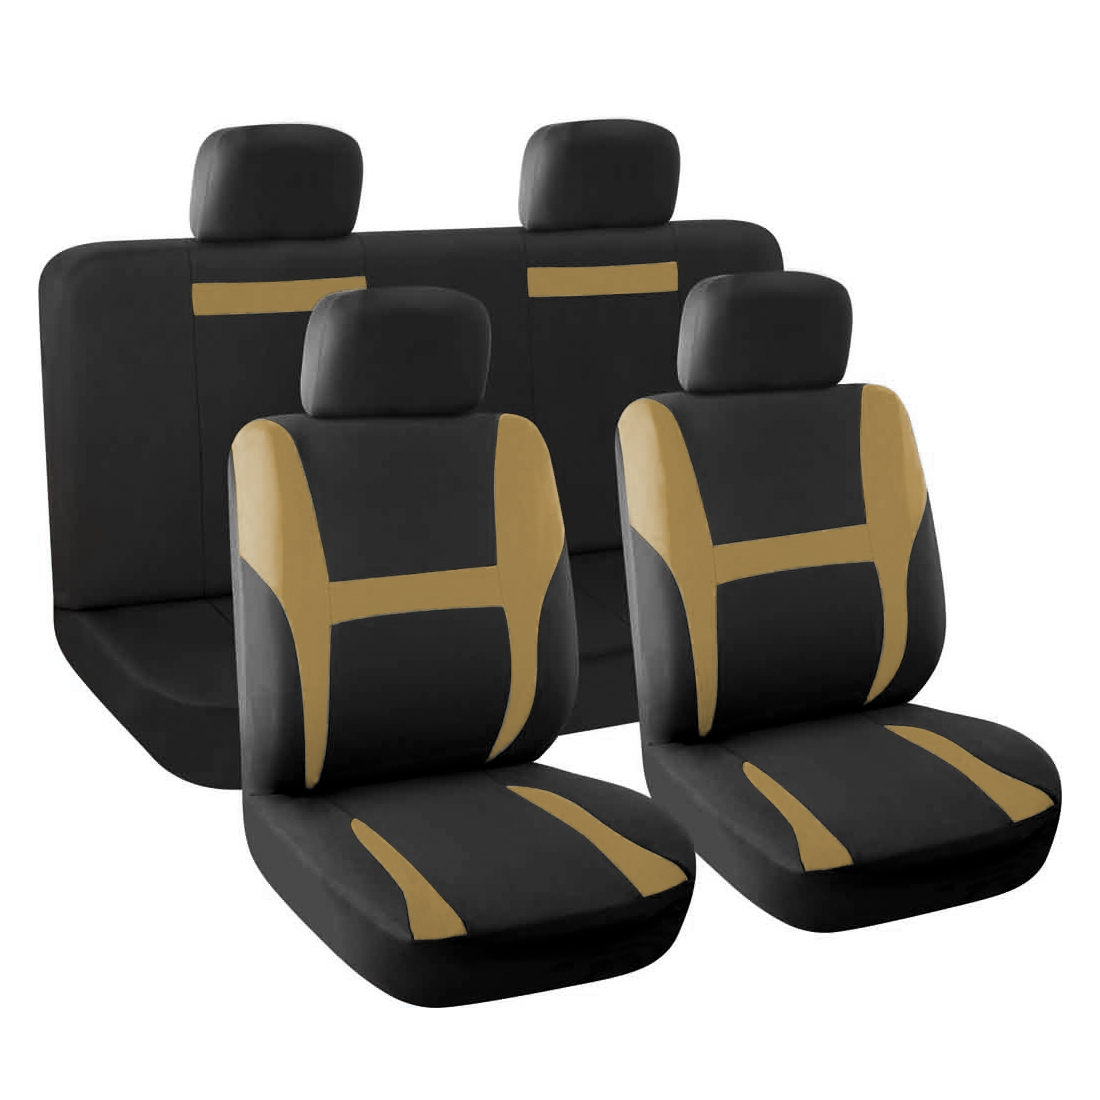 New Car Seat Covers Full Set Beige Black for Auto SUV w/Head Rests